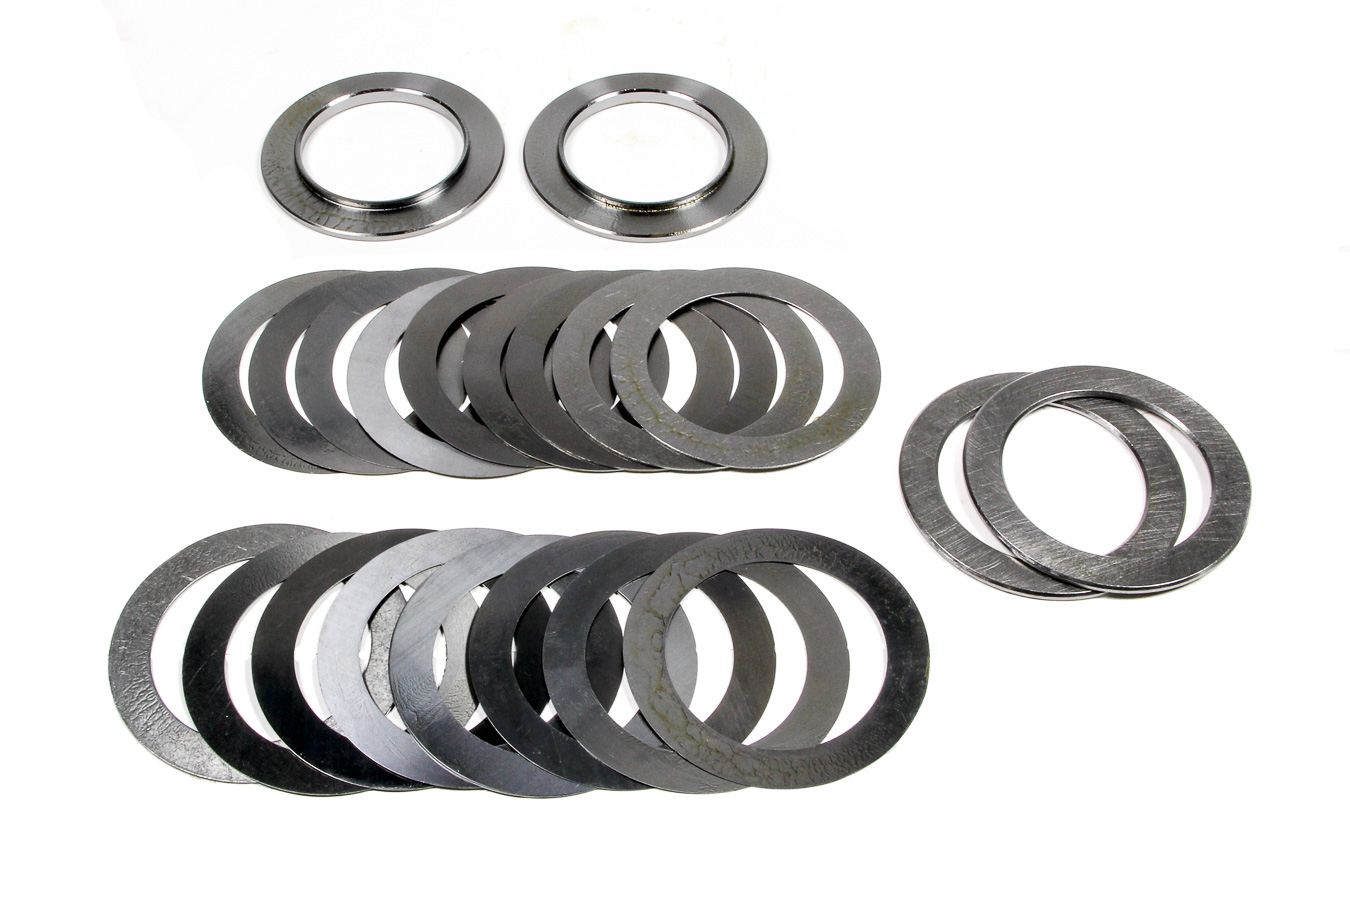 Ratech 1126 Ford 8.8 Carrier Shims